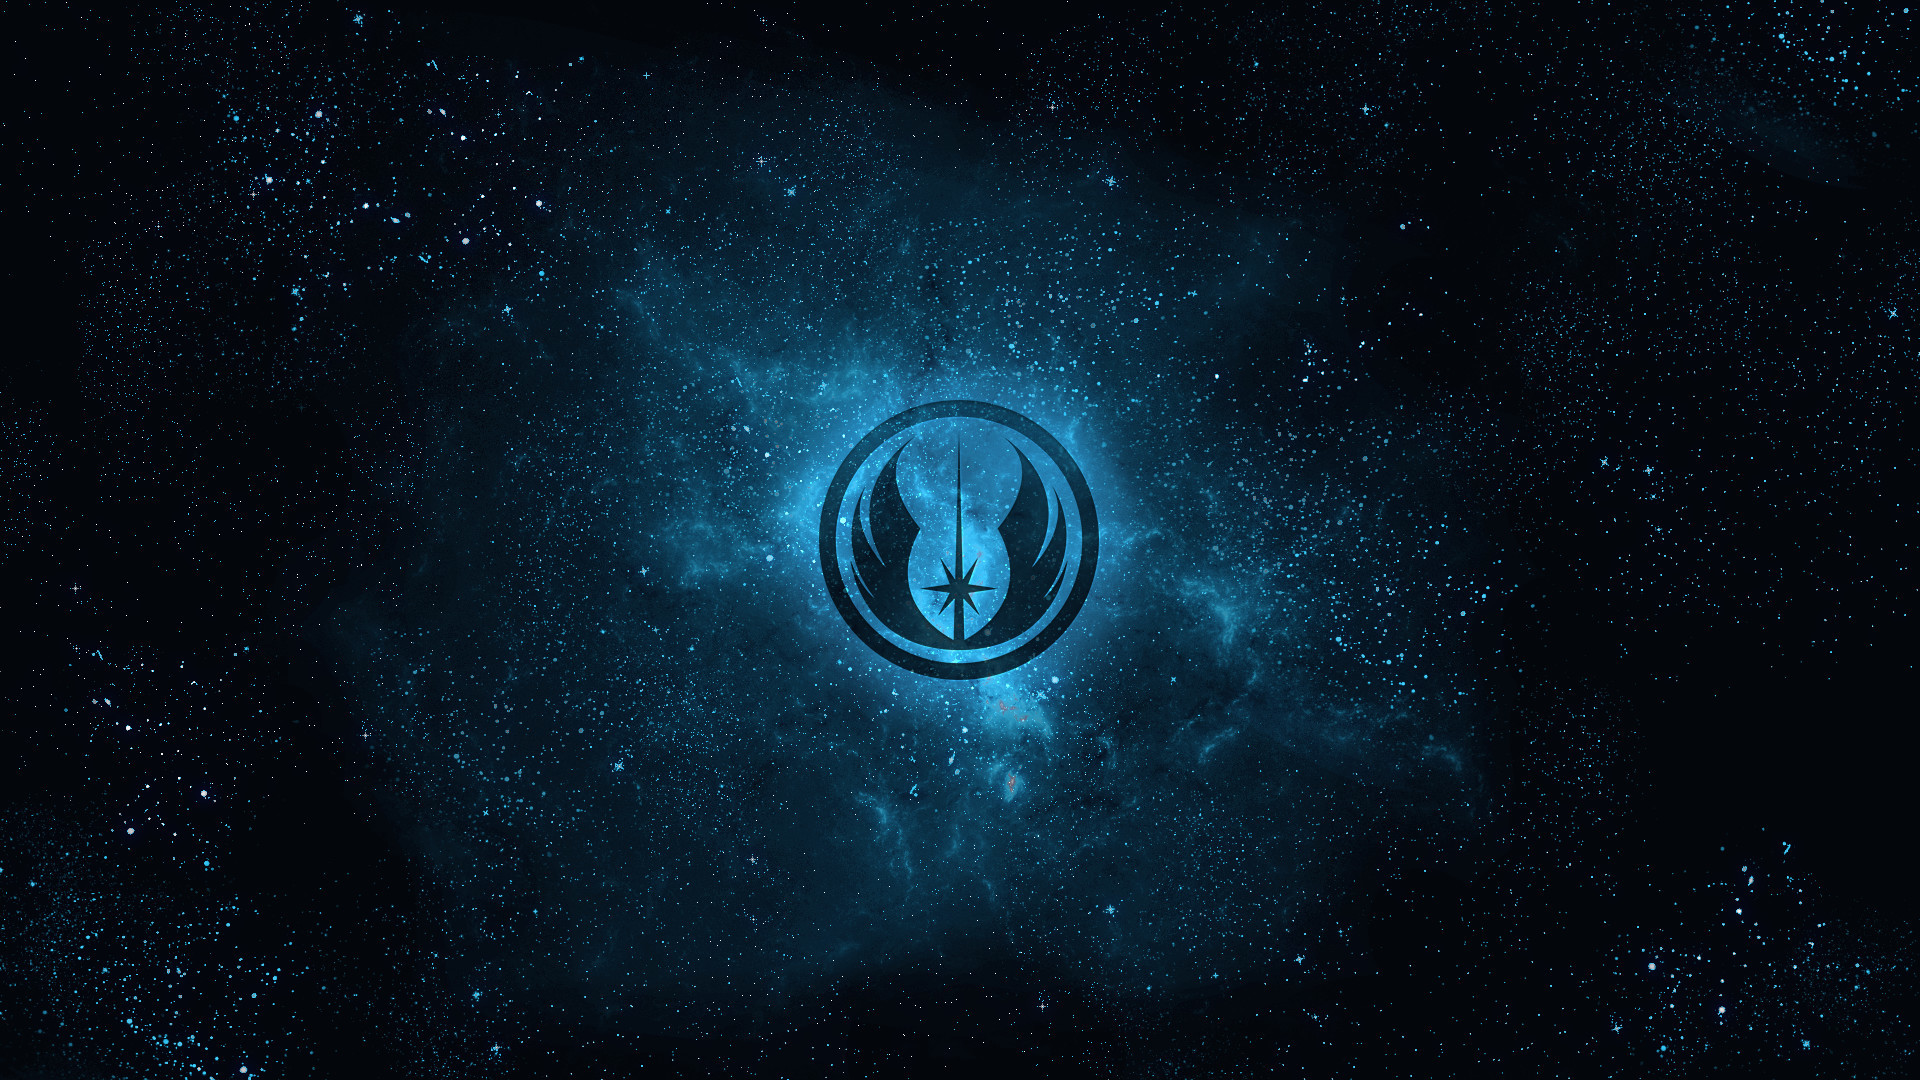 Star Wars Jedi Symbol Wallpaper 74 Pictures